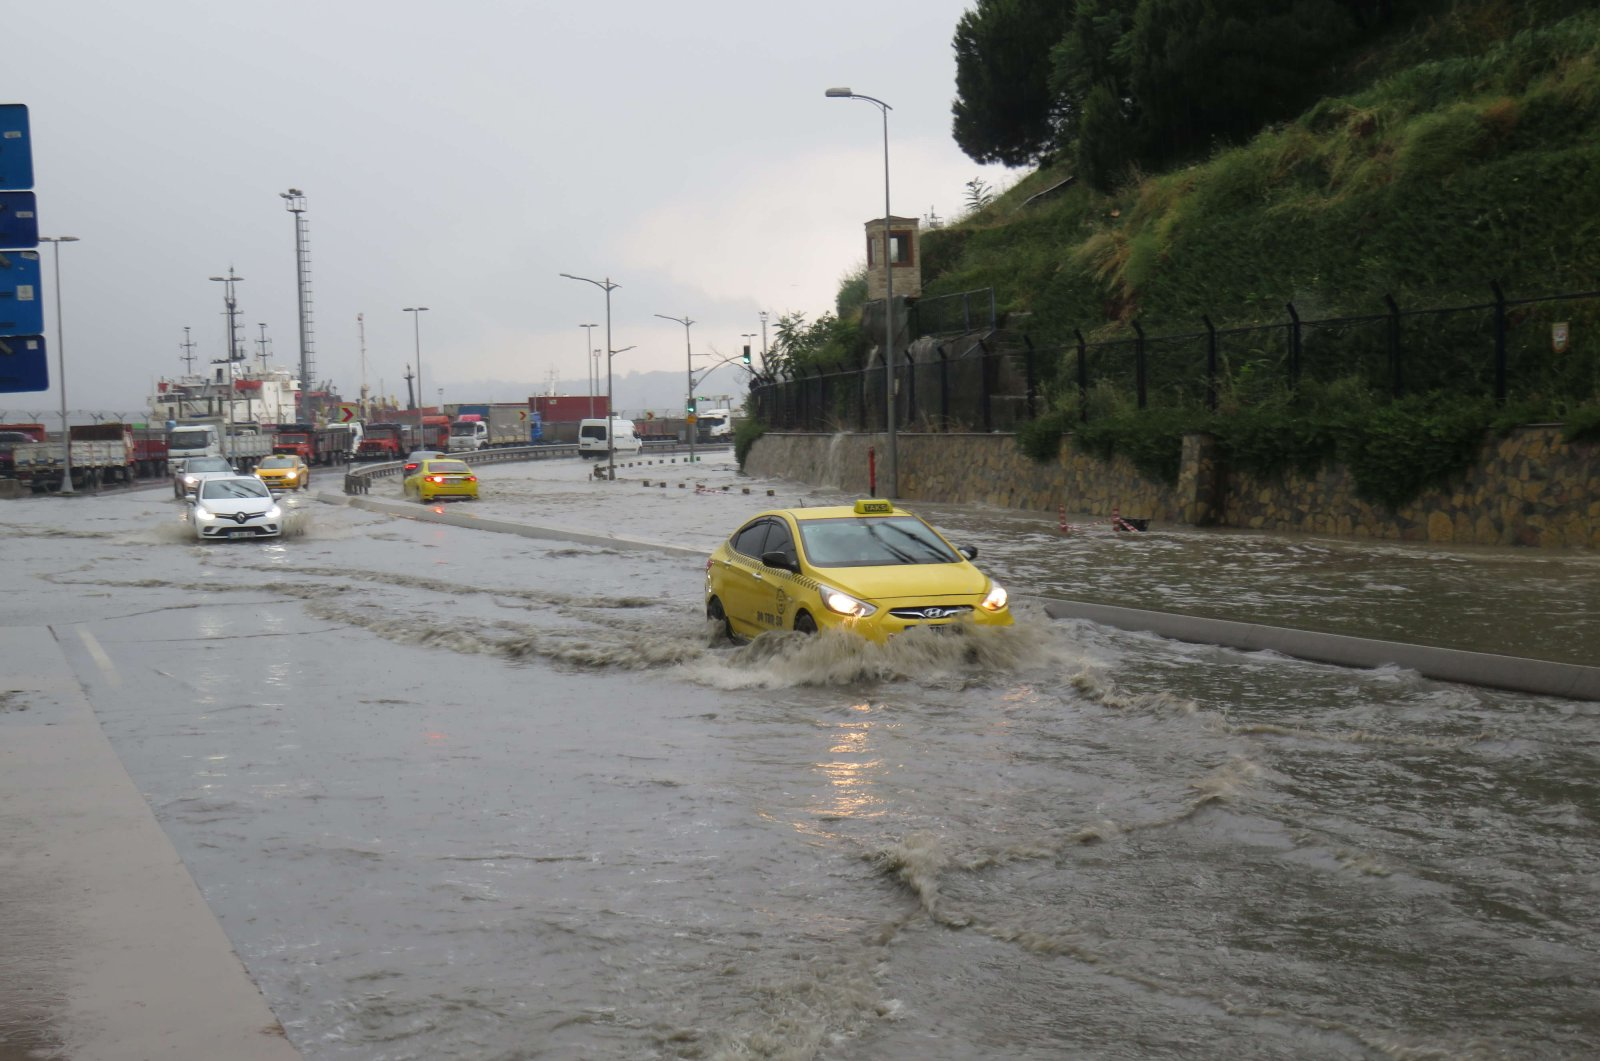 A taxi on a flooded road in the Üsküdar district of Istanbul, Turkey, June 19, 2020. (DHA Photo)